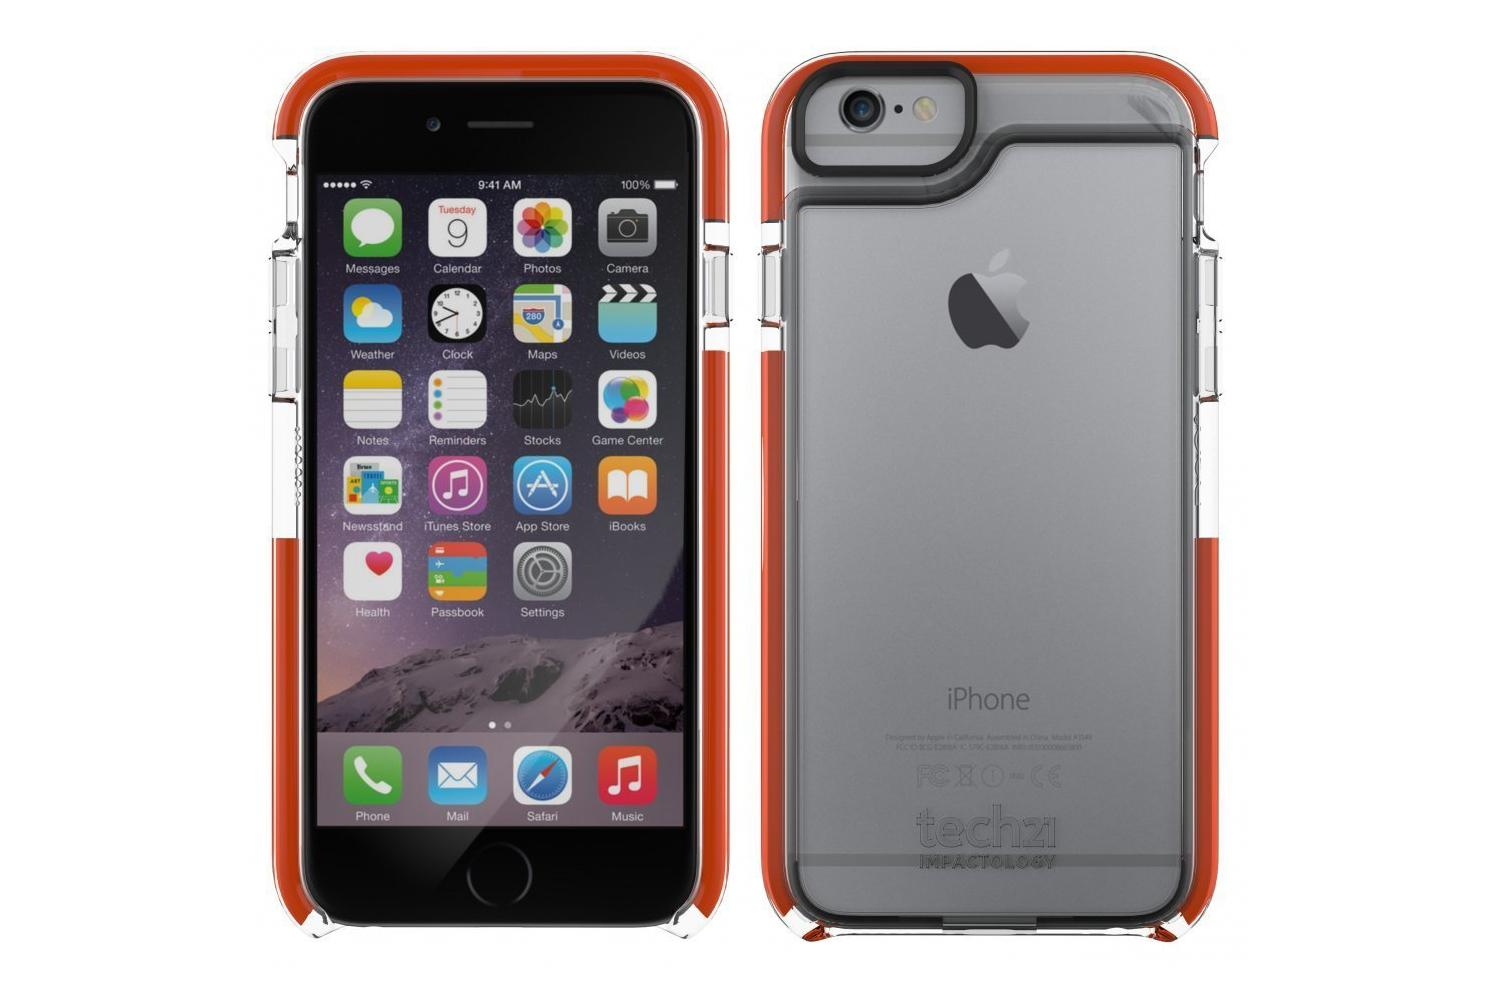 40 Best iPhone 6 Cases and Covers